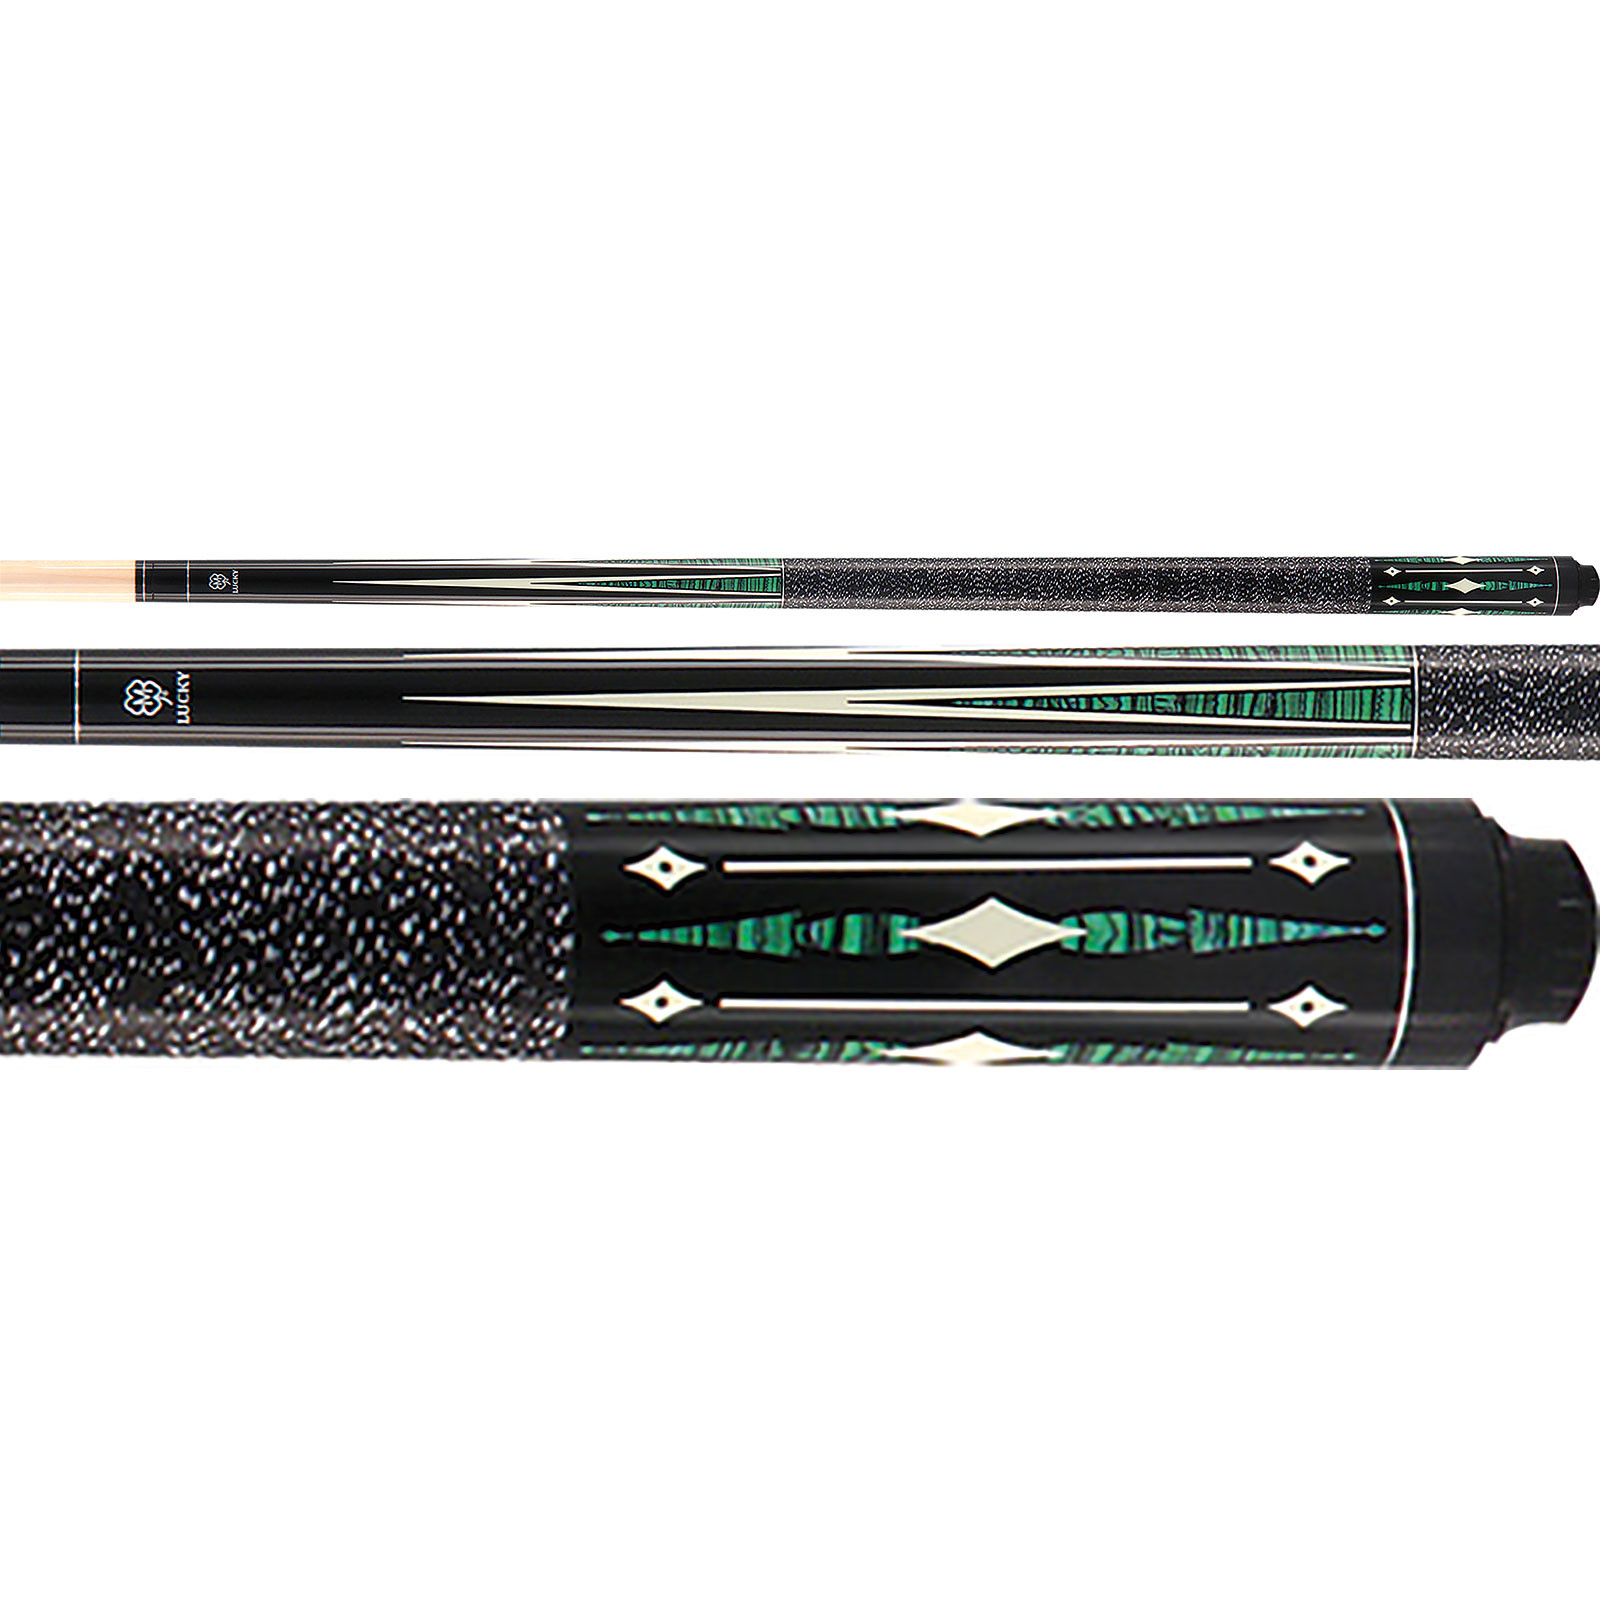 McDermott Lucky Pool Cue, L28, Green